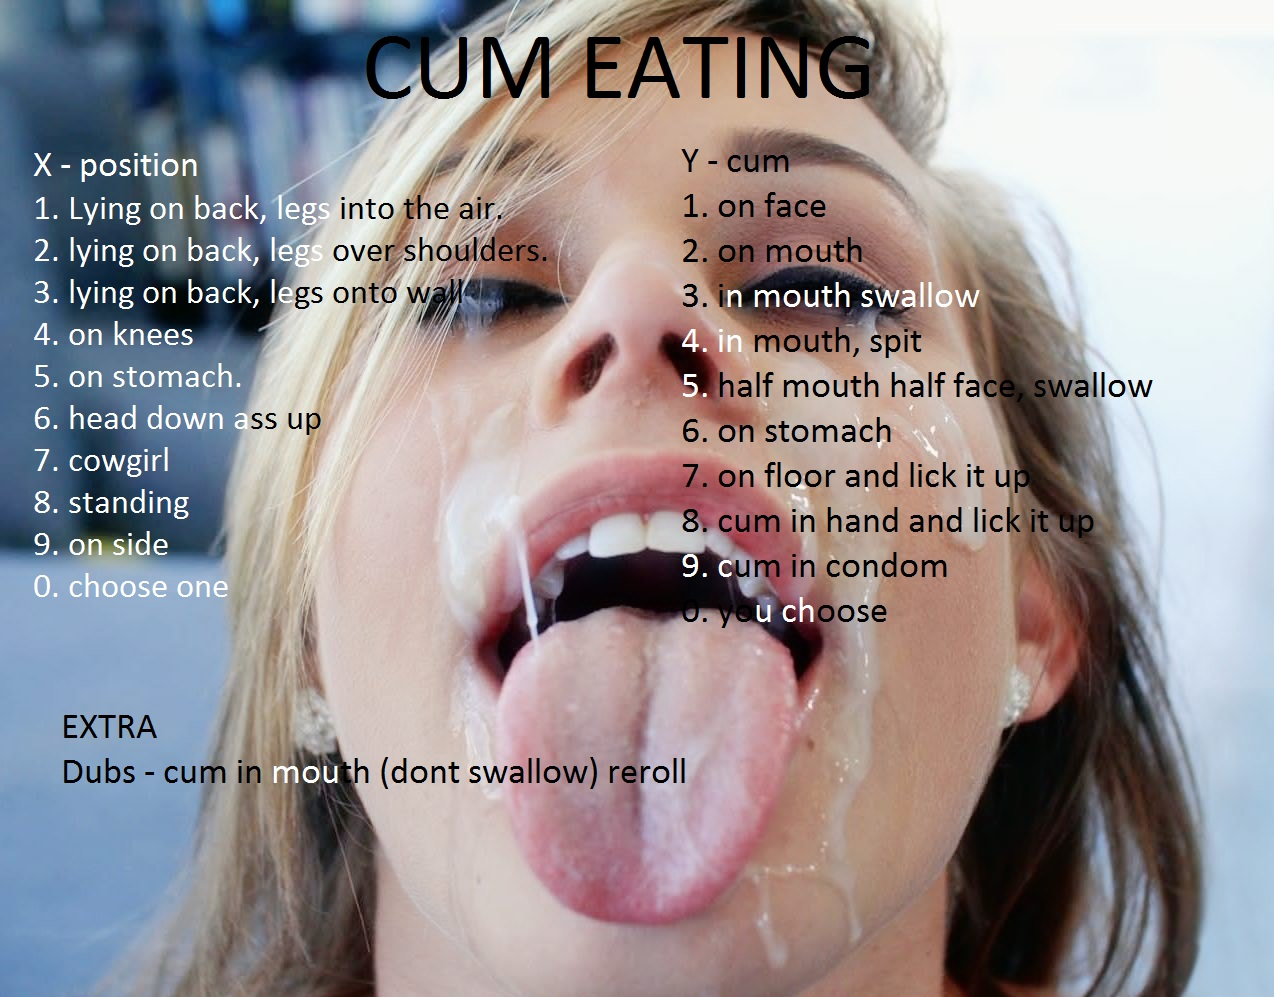 Porn Eating On Floor cum eating fap roulette | free hot nude porn pic gallery